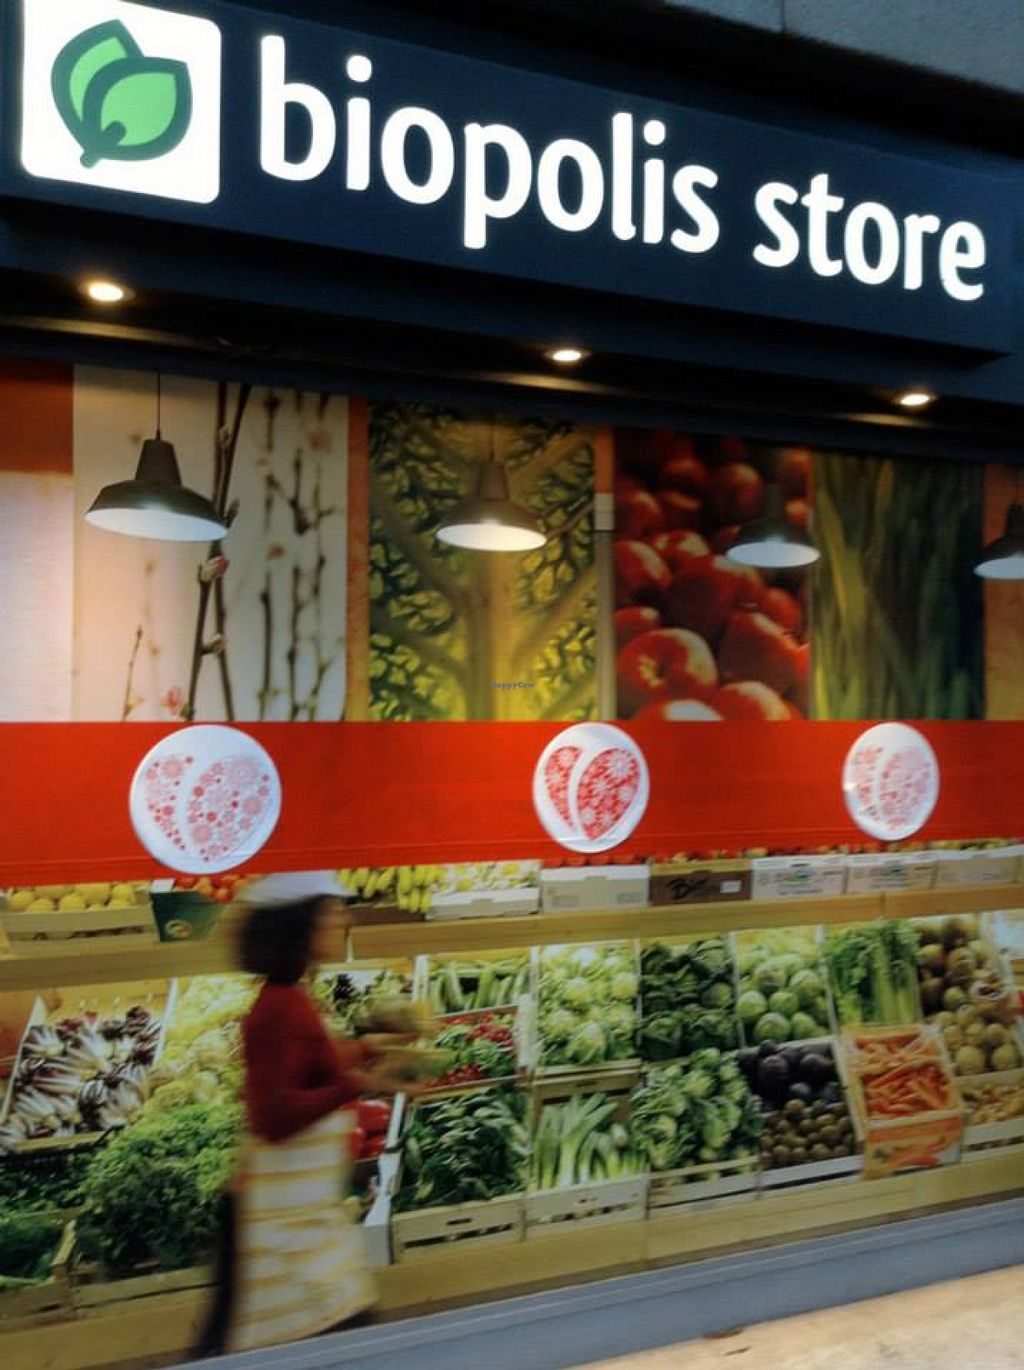 """Photo of Biopolis Store  by <a href=""""/members/profile/veg-geko"""">veg-geko</a> <br/>Biopolis Store <br/> August 4, 2015  - <a href='/contact/abuse/image/61584/112254'>Report</a>"""